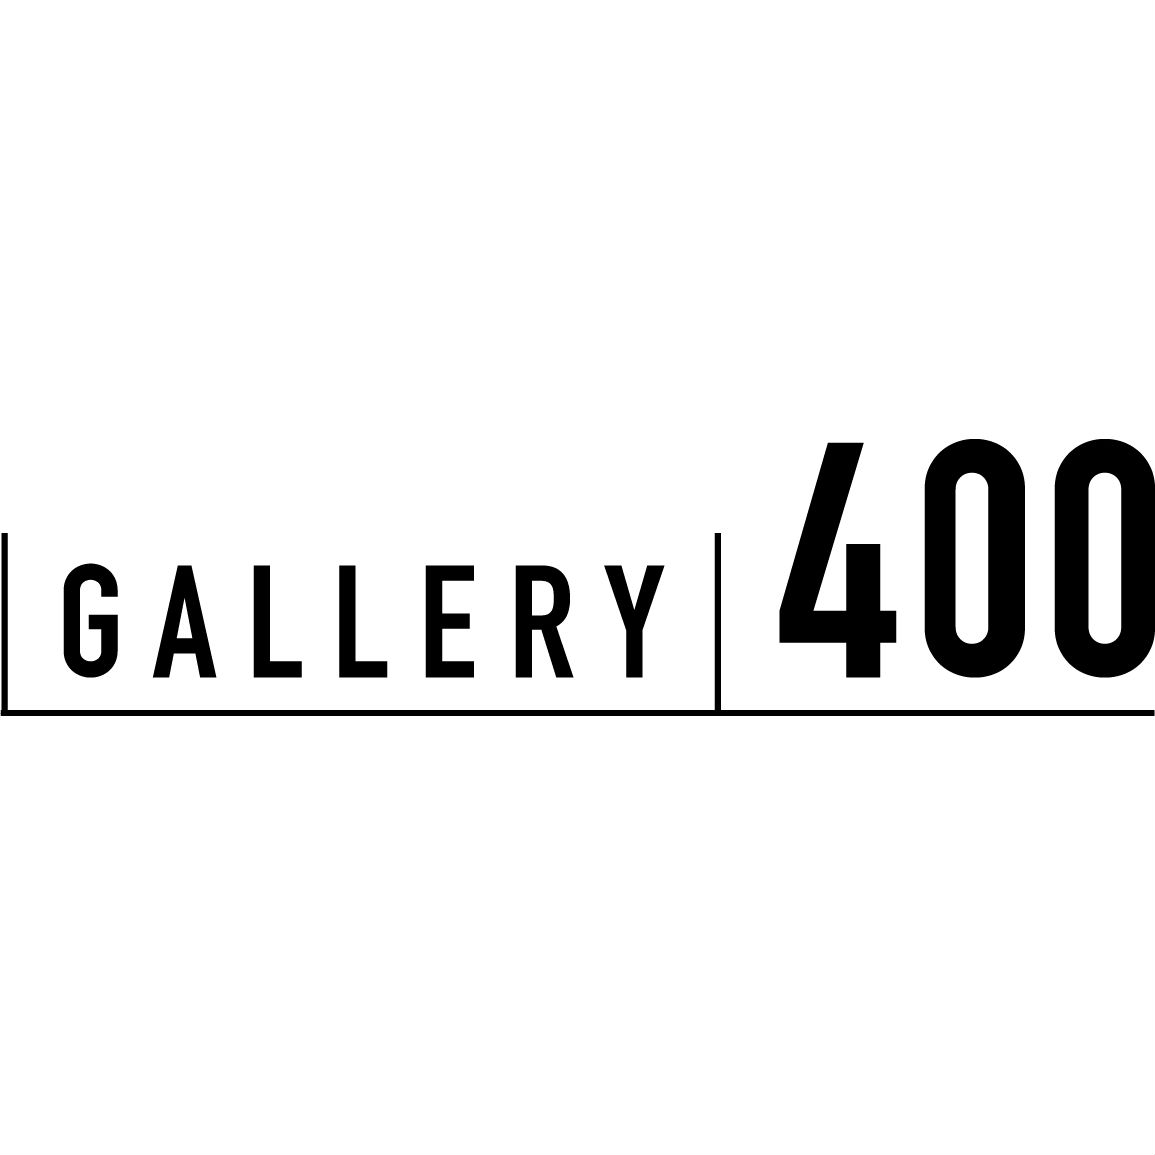 University of Illinois, Chicago's Gallery 400